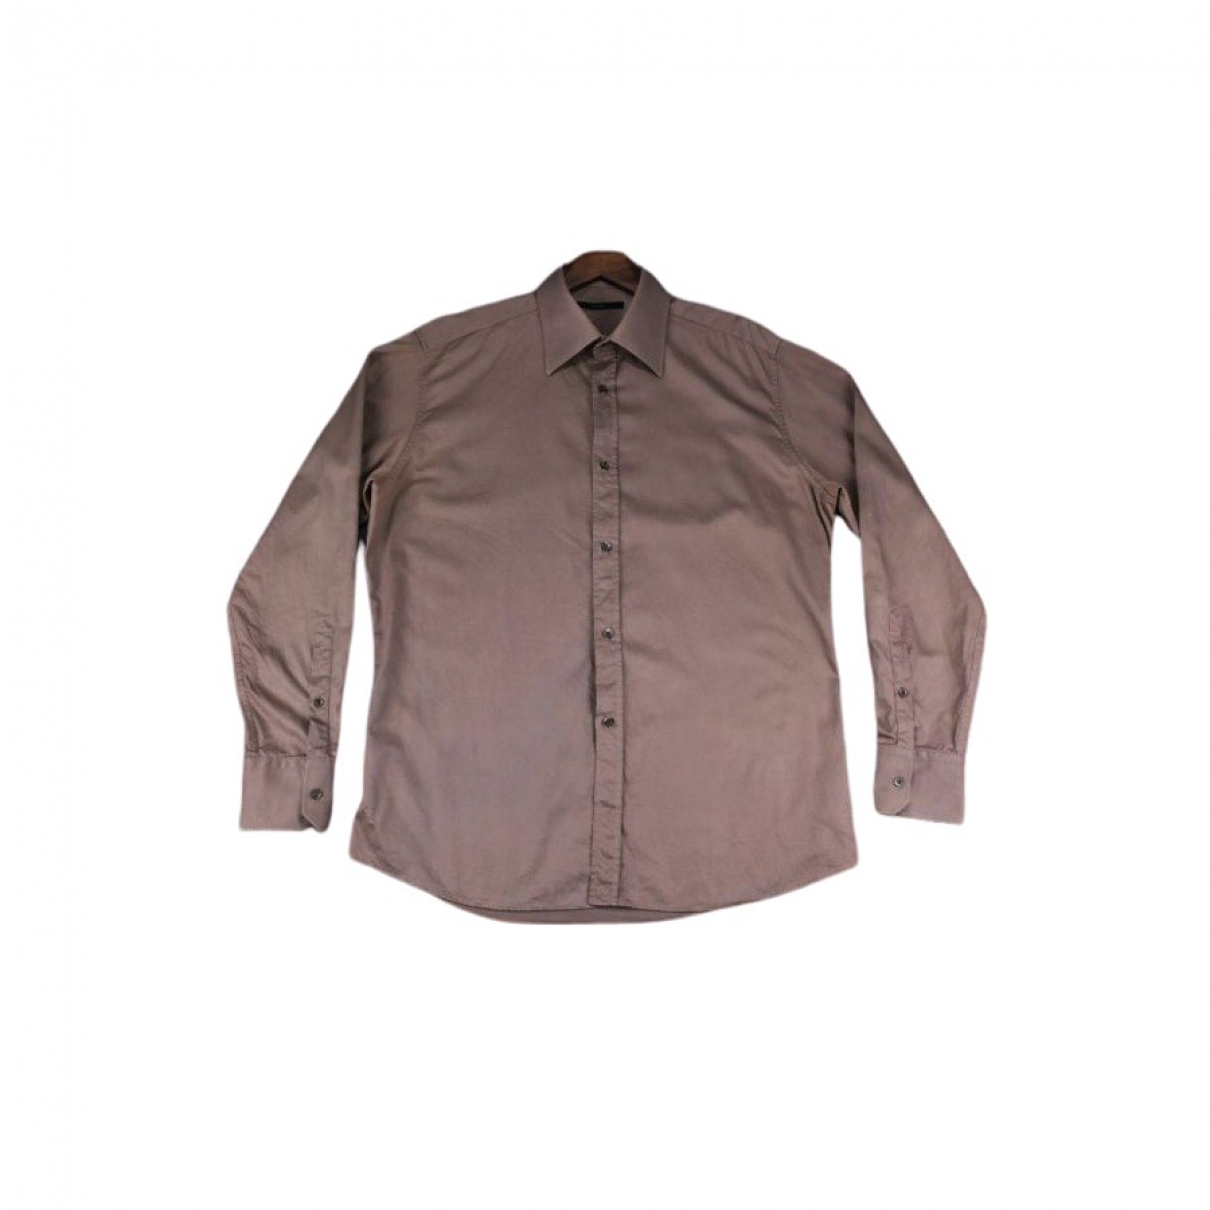 Gucci \N Brown Cotton Shirts for Men 42 EU (tour de cou / collar)